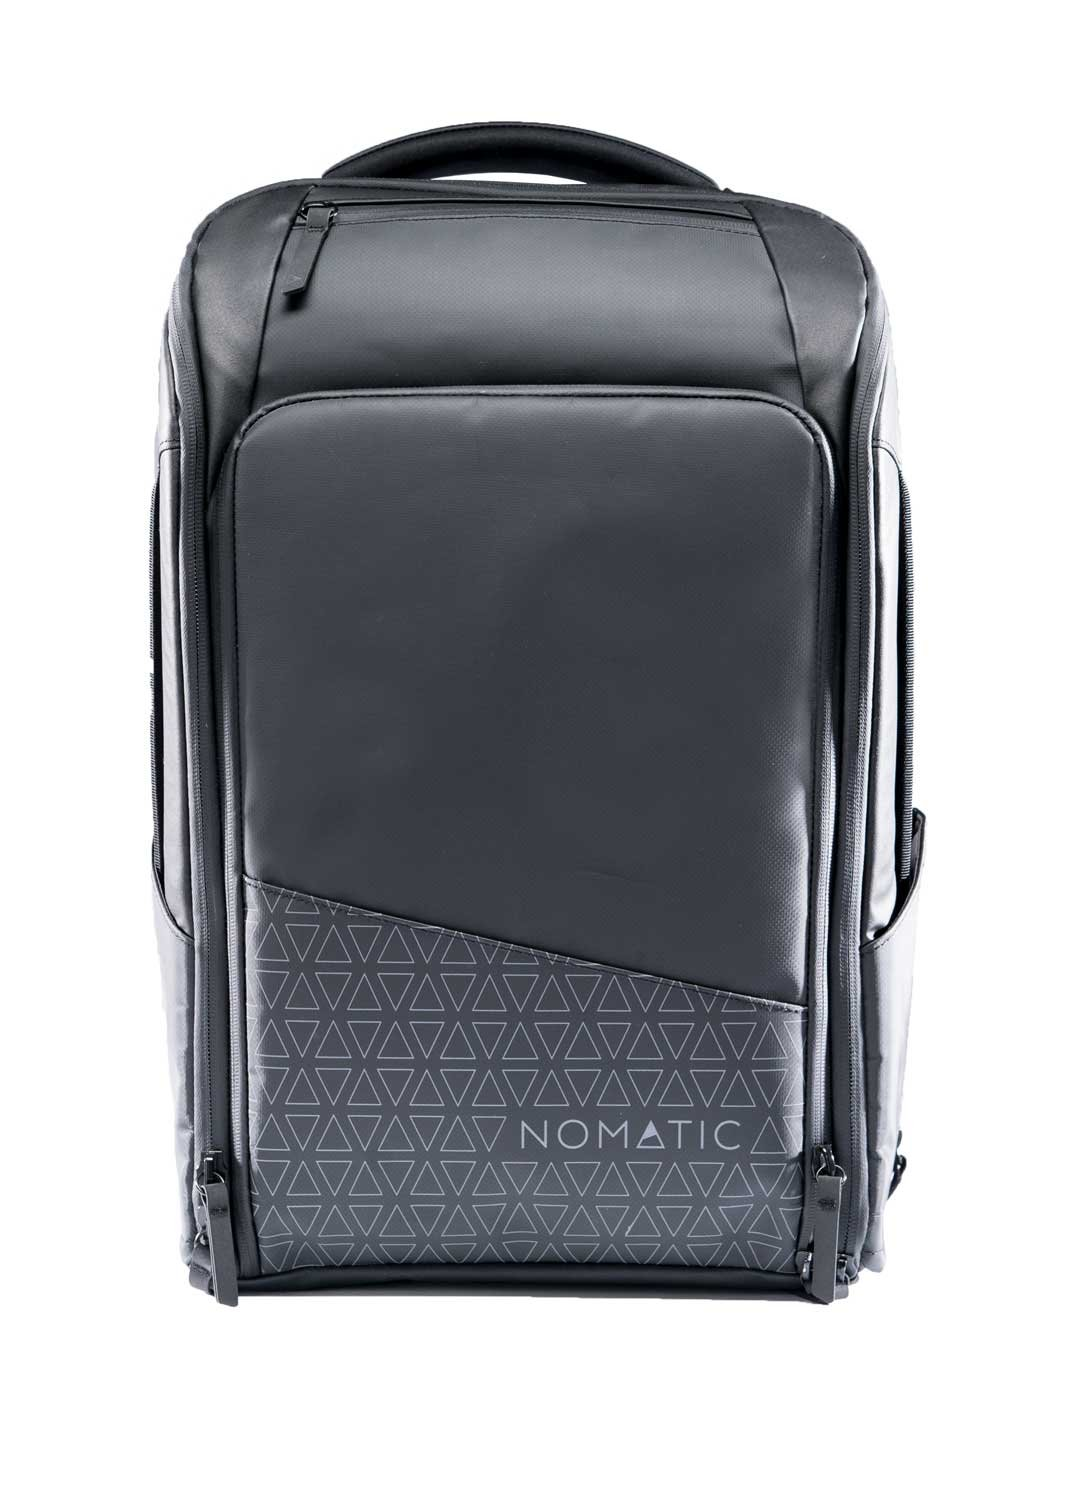 NOMATIC Backpack- Slim Black Water Resistant Anti-Theft 20L Laptop Bag RFID Protected by Nomatic